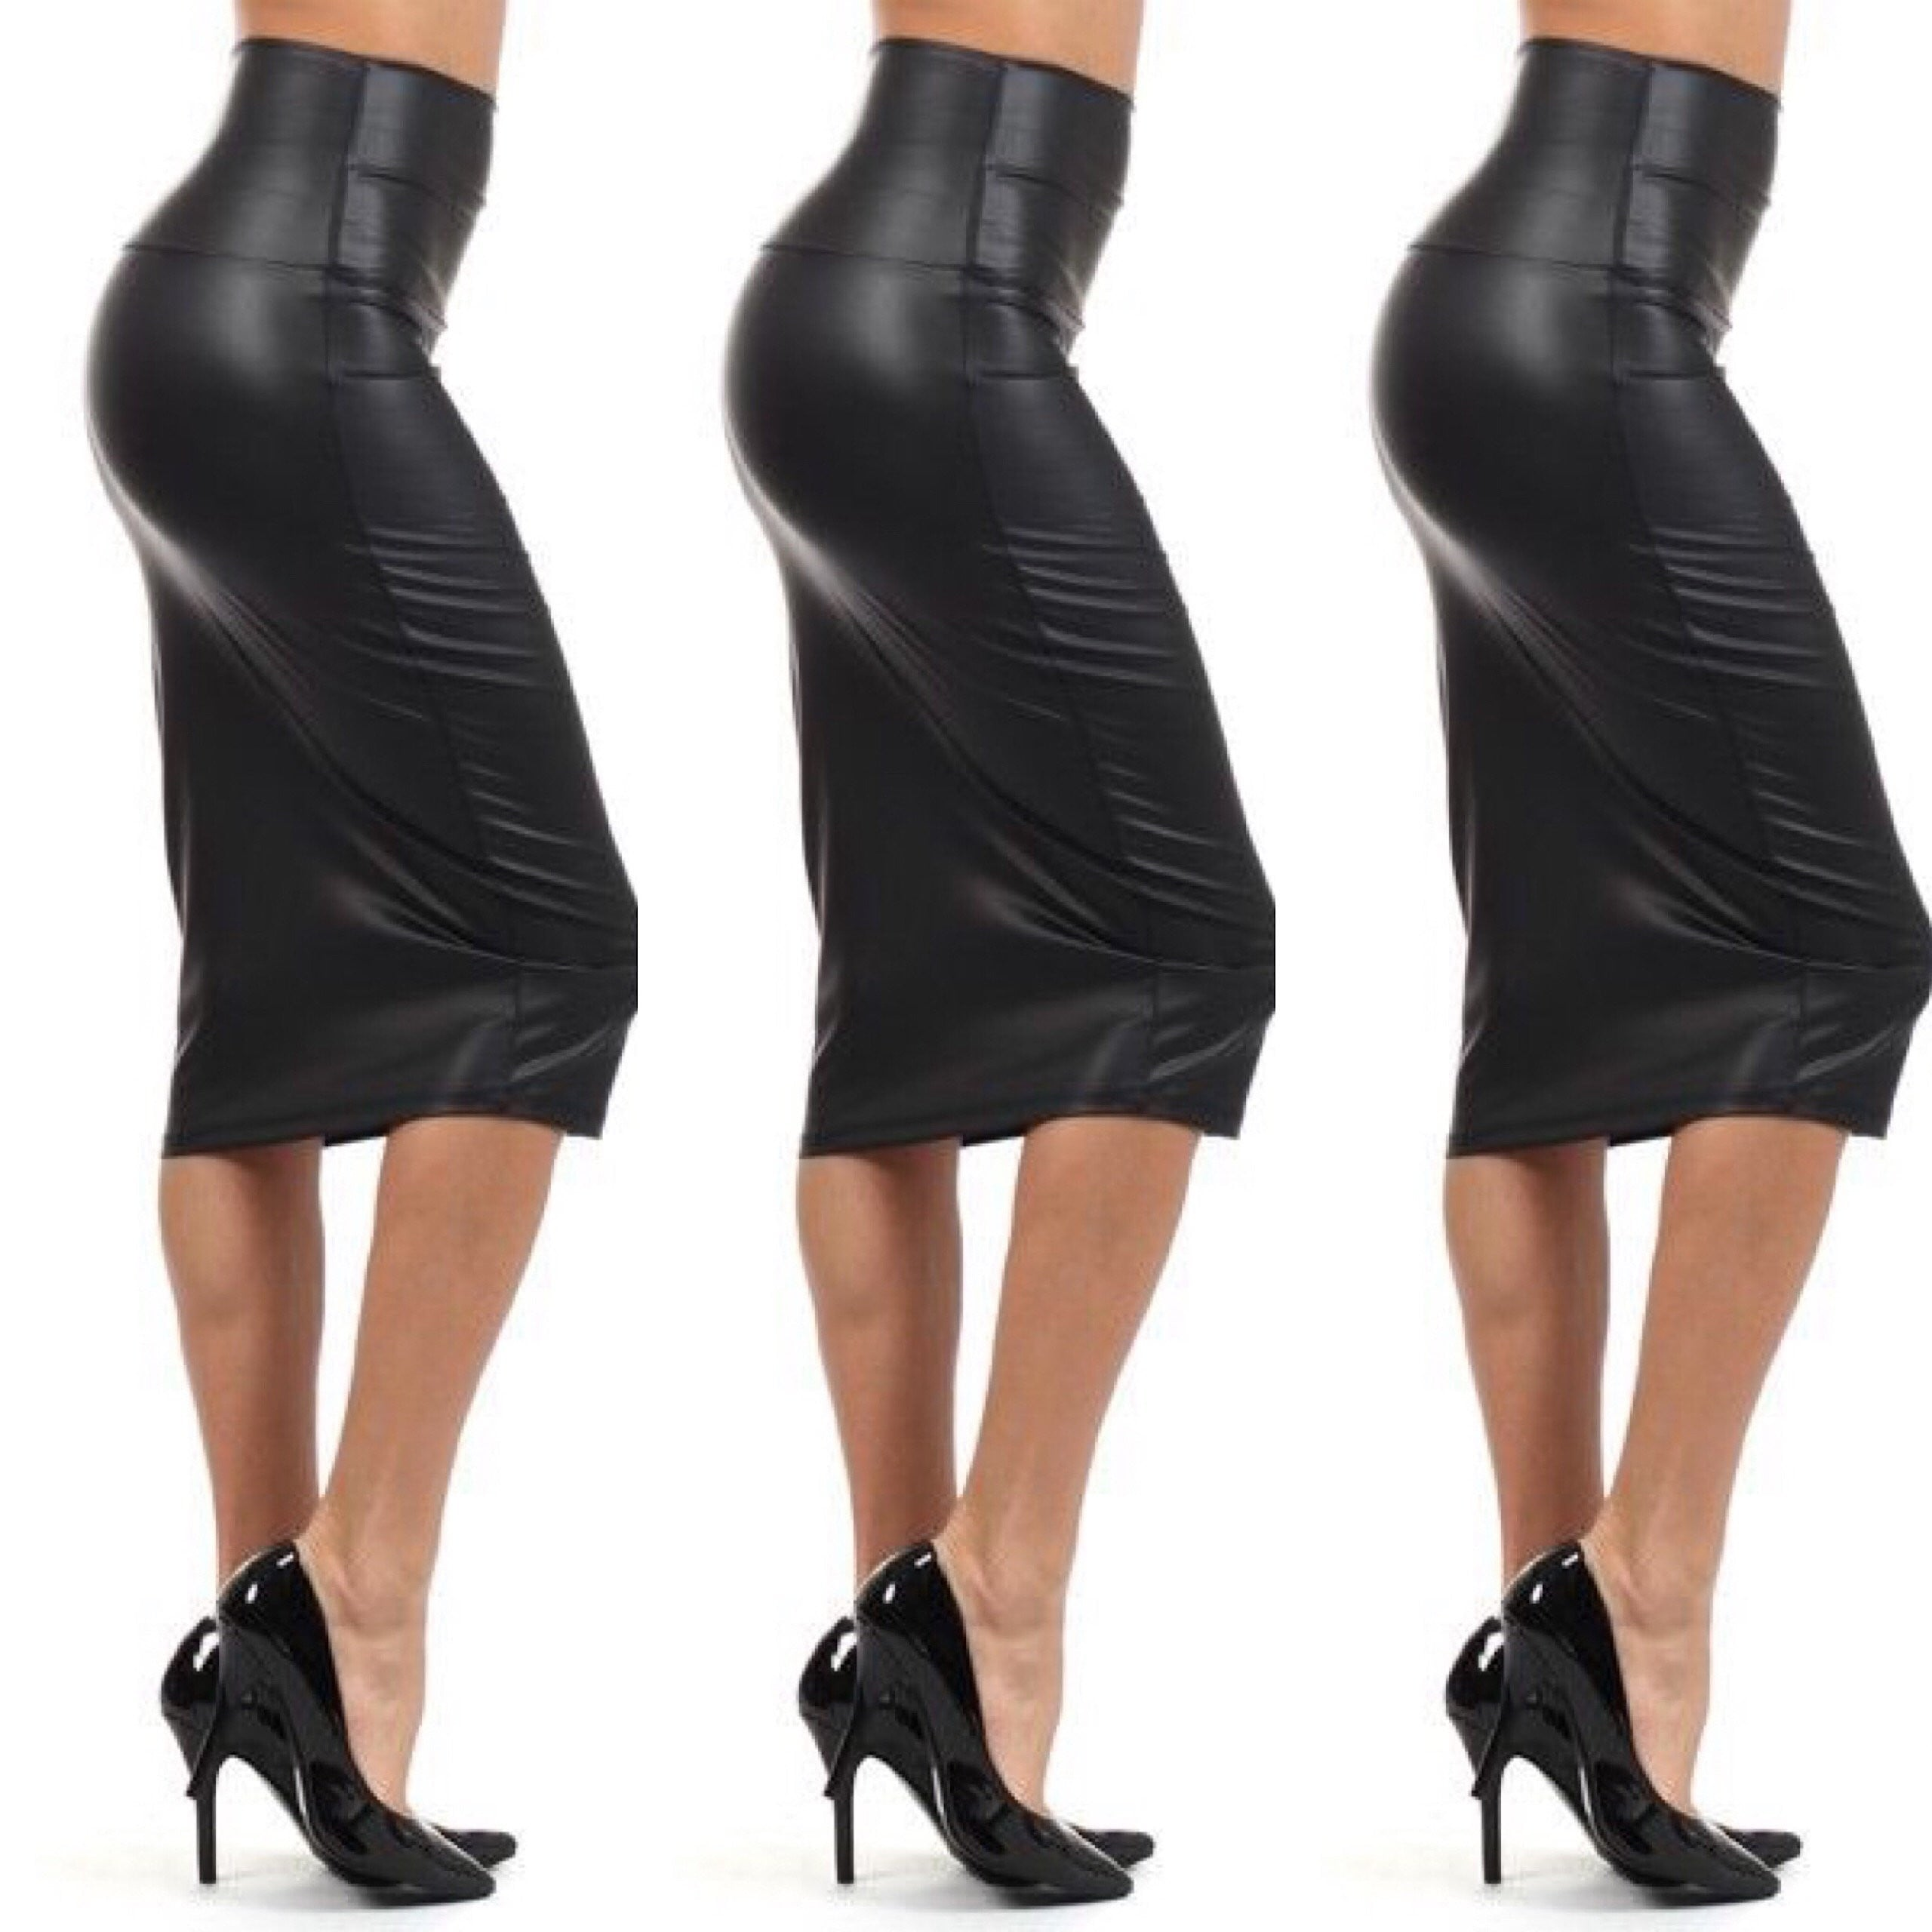 b37a63bcea2ff Shop for Skirts & Pants at Social Butterfly Collection